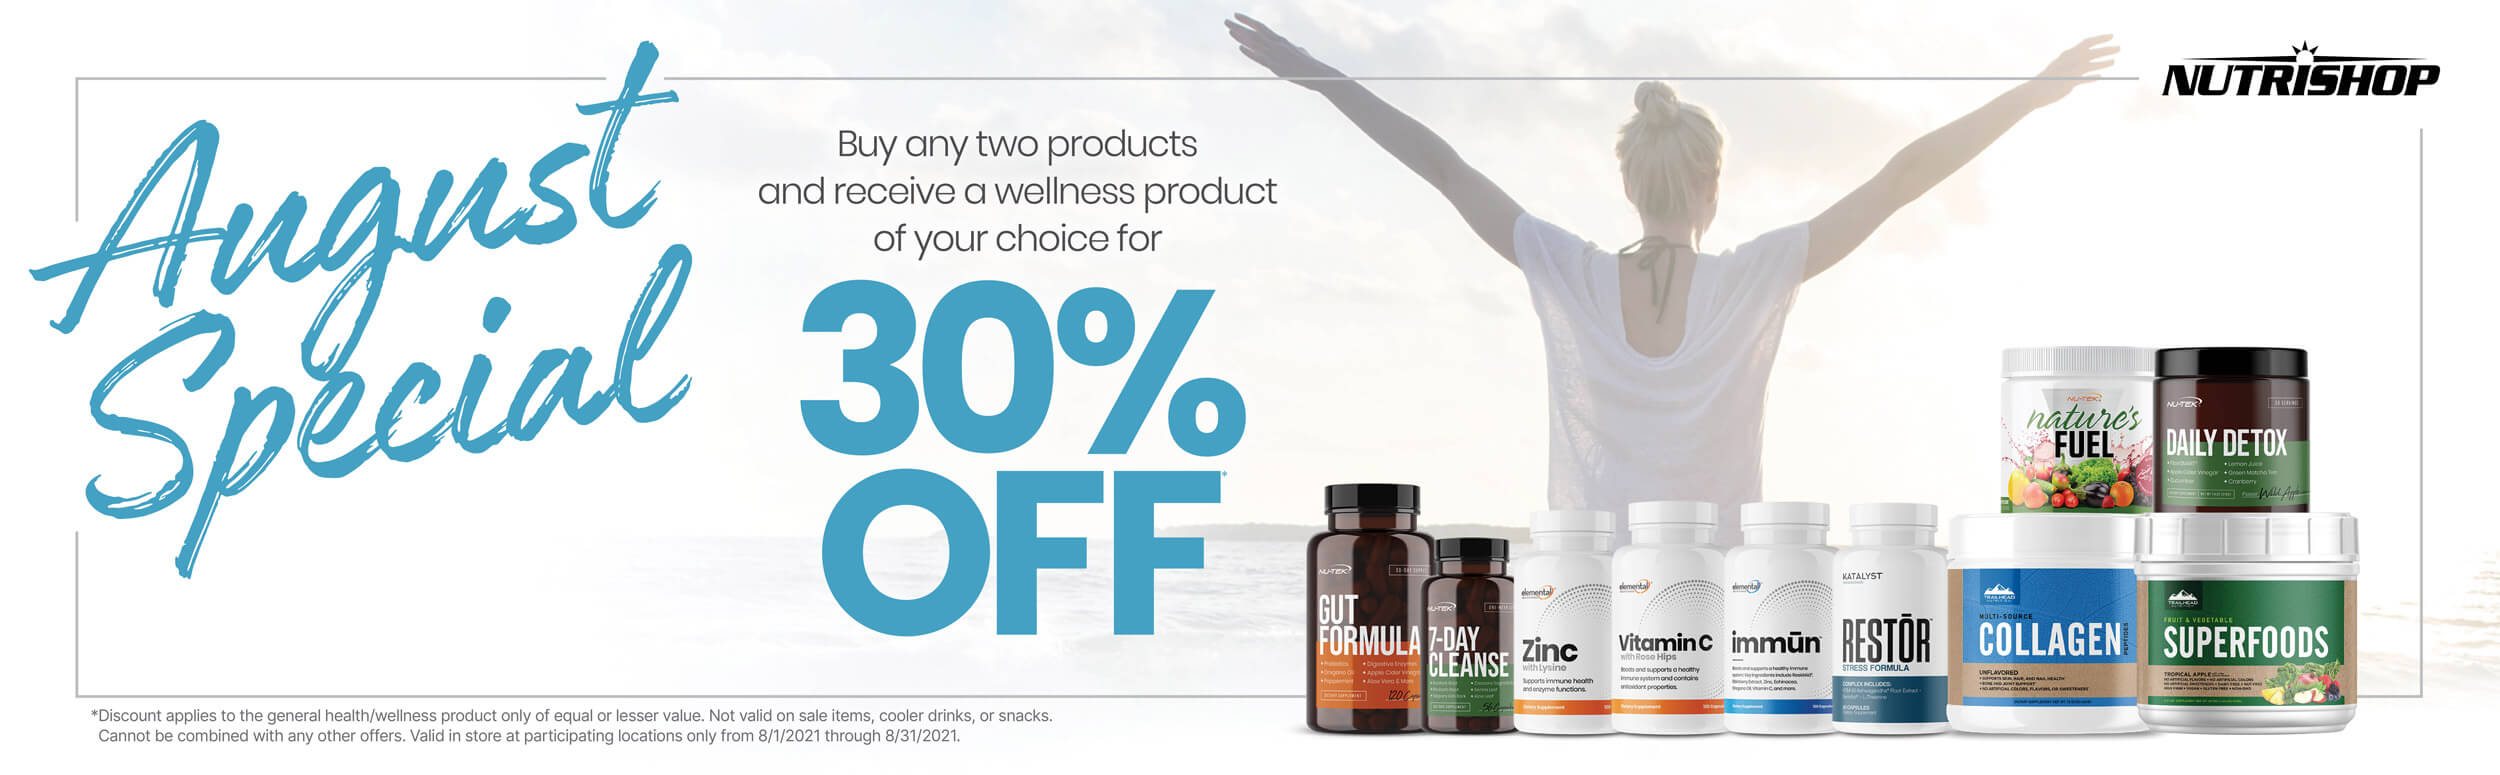 August special buy any two products and recieve a wellness product of your choice for thirty percent off